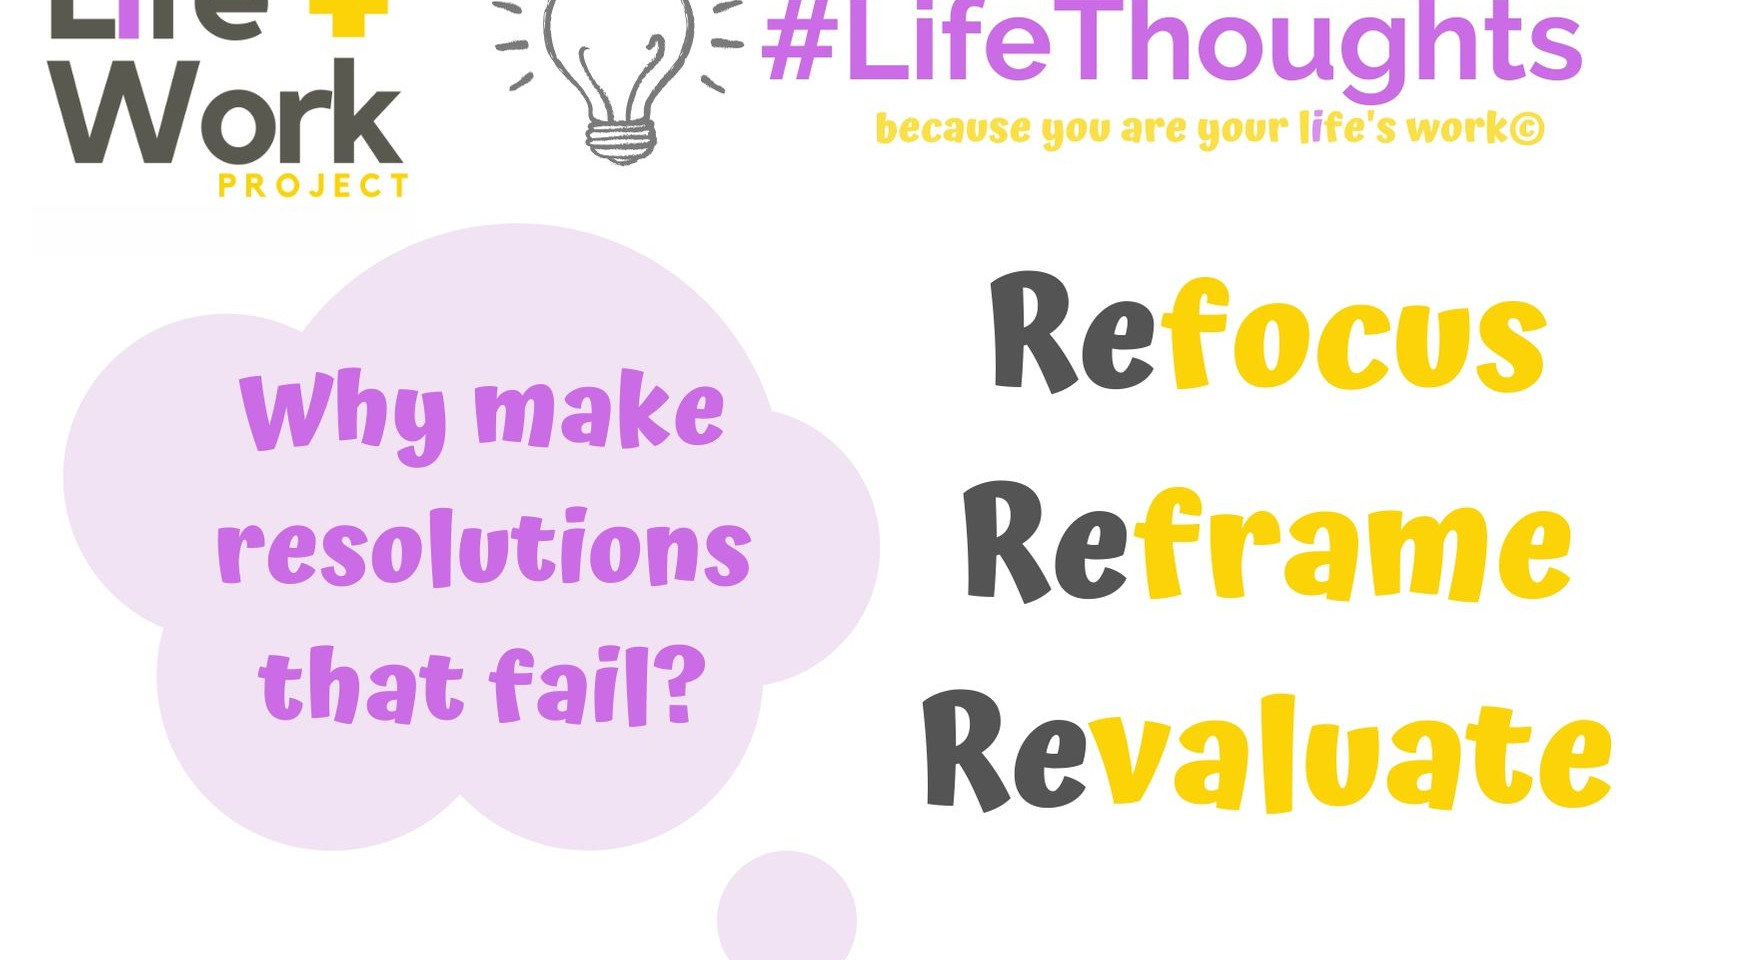 Have you tried to refocus, reframe and revaluate?